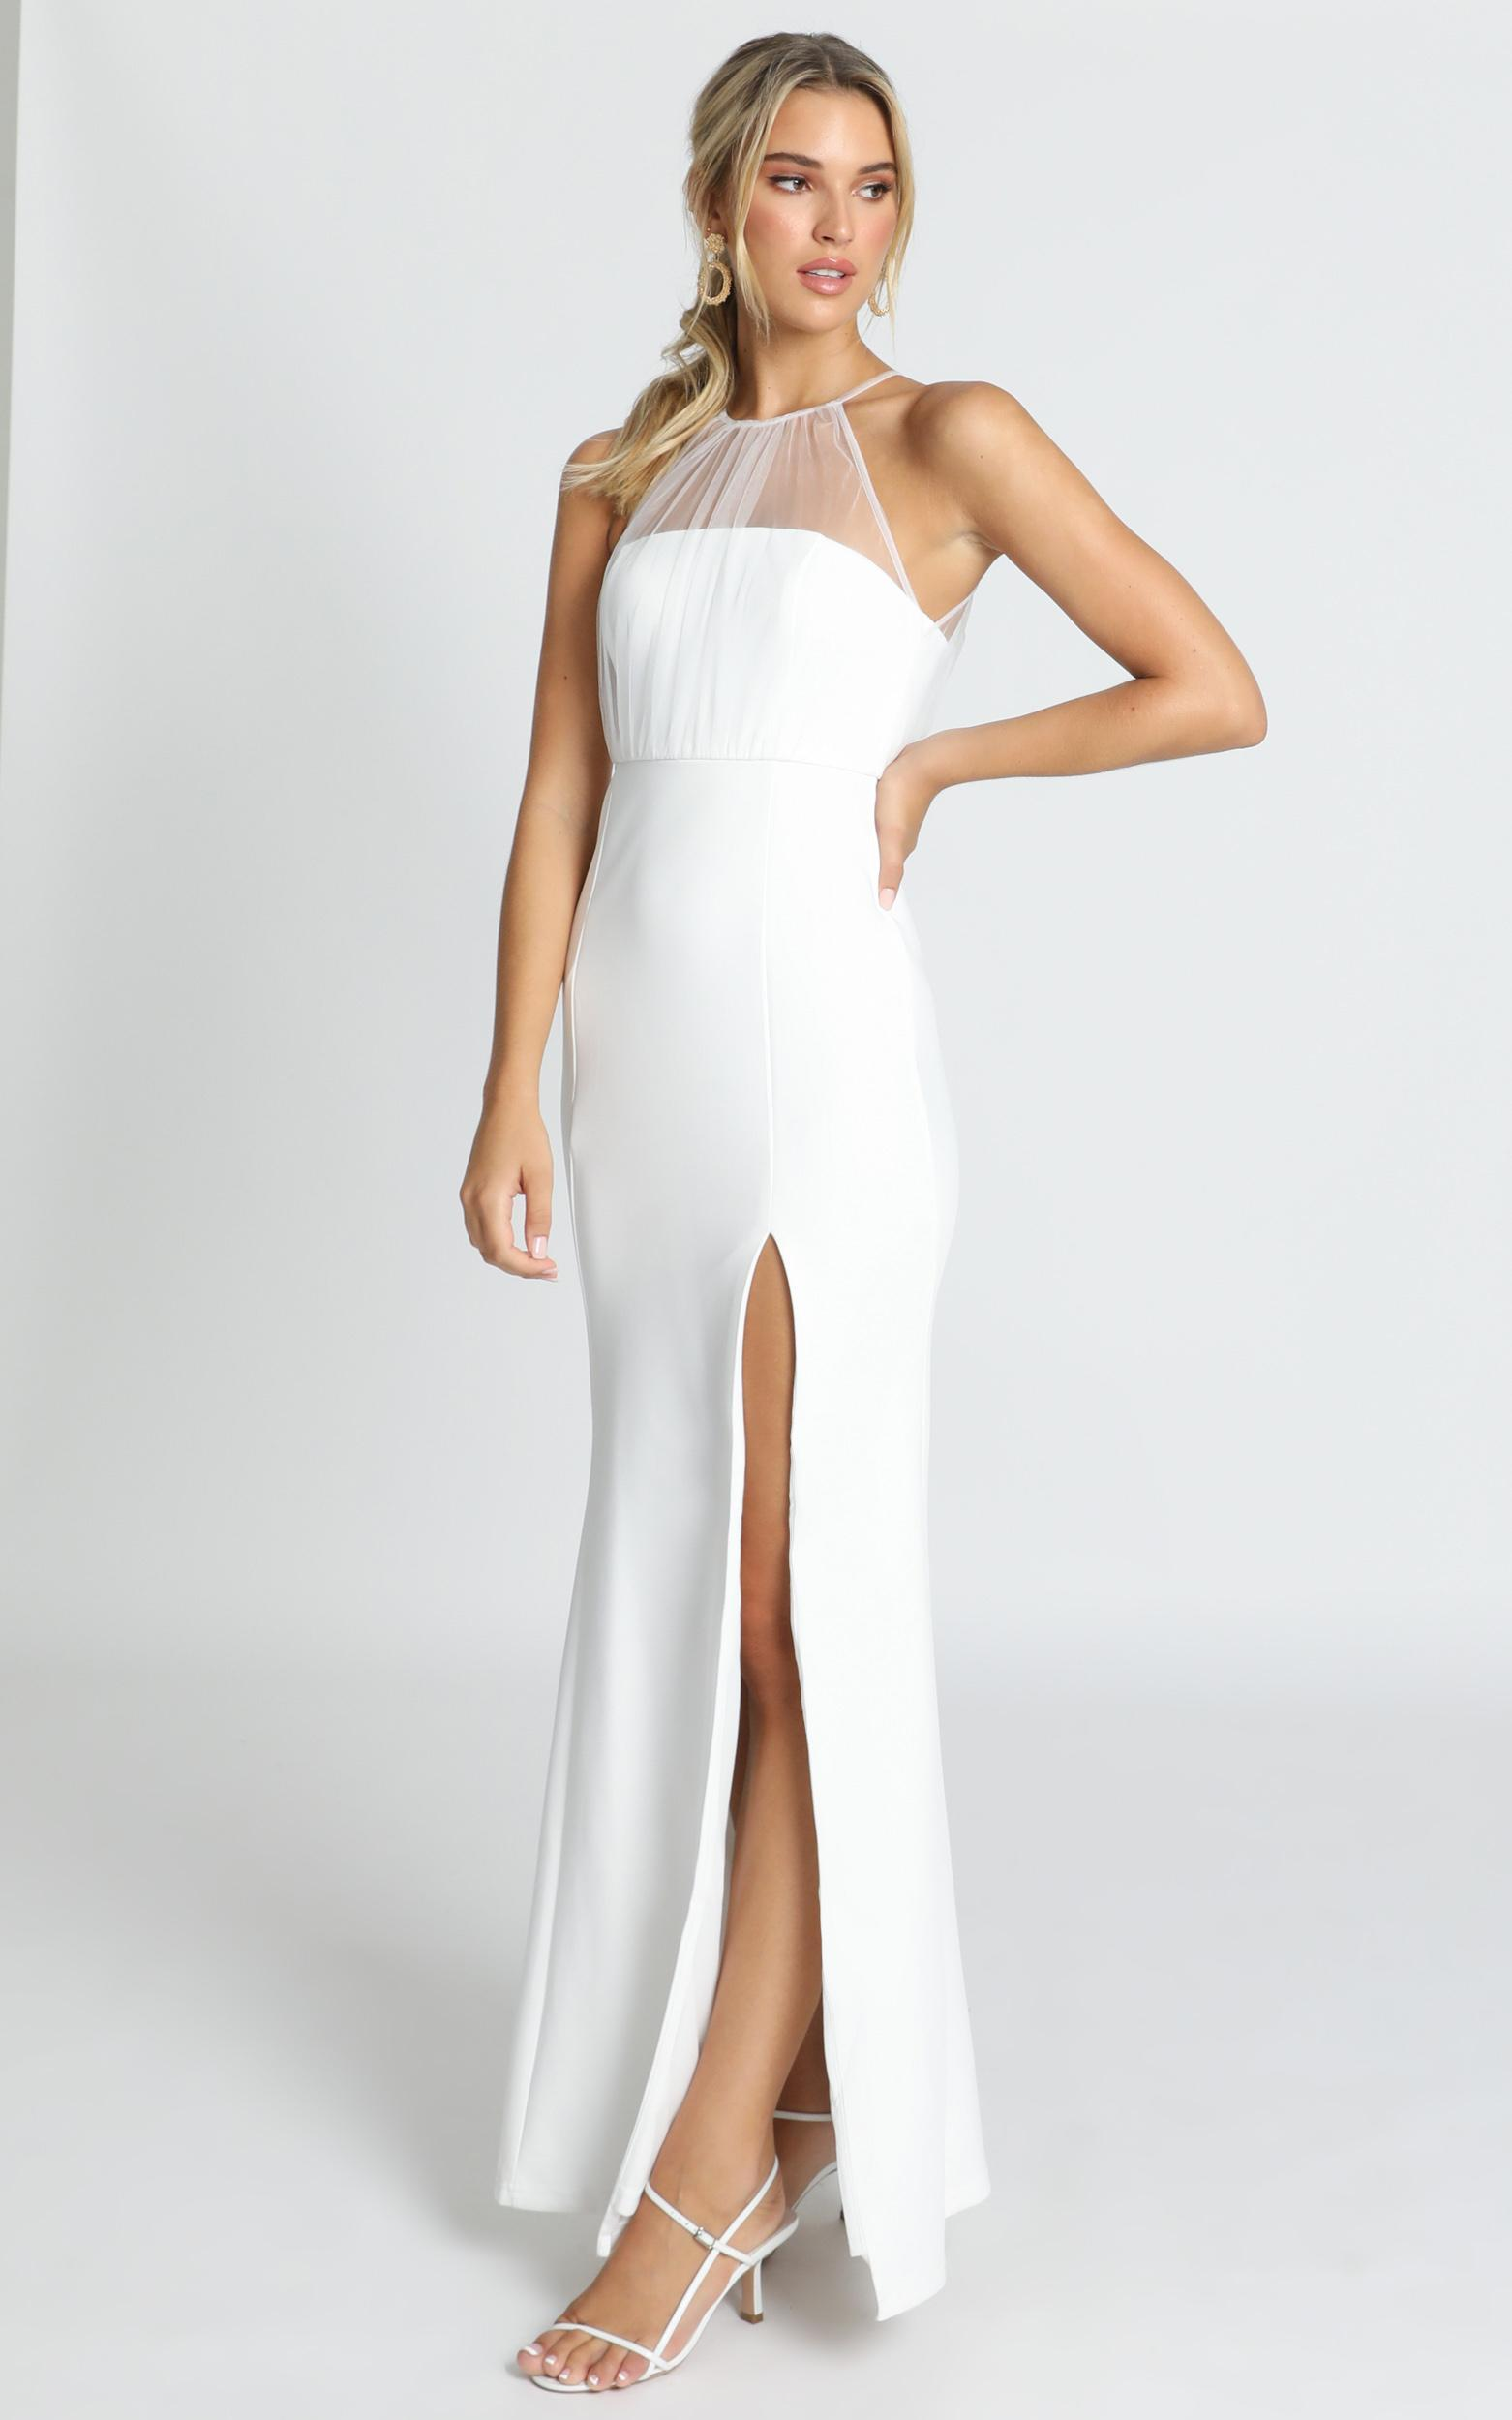 Still Love You Dress in white - 14 (XL), White, hi-res image number null